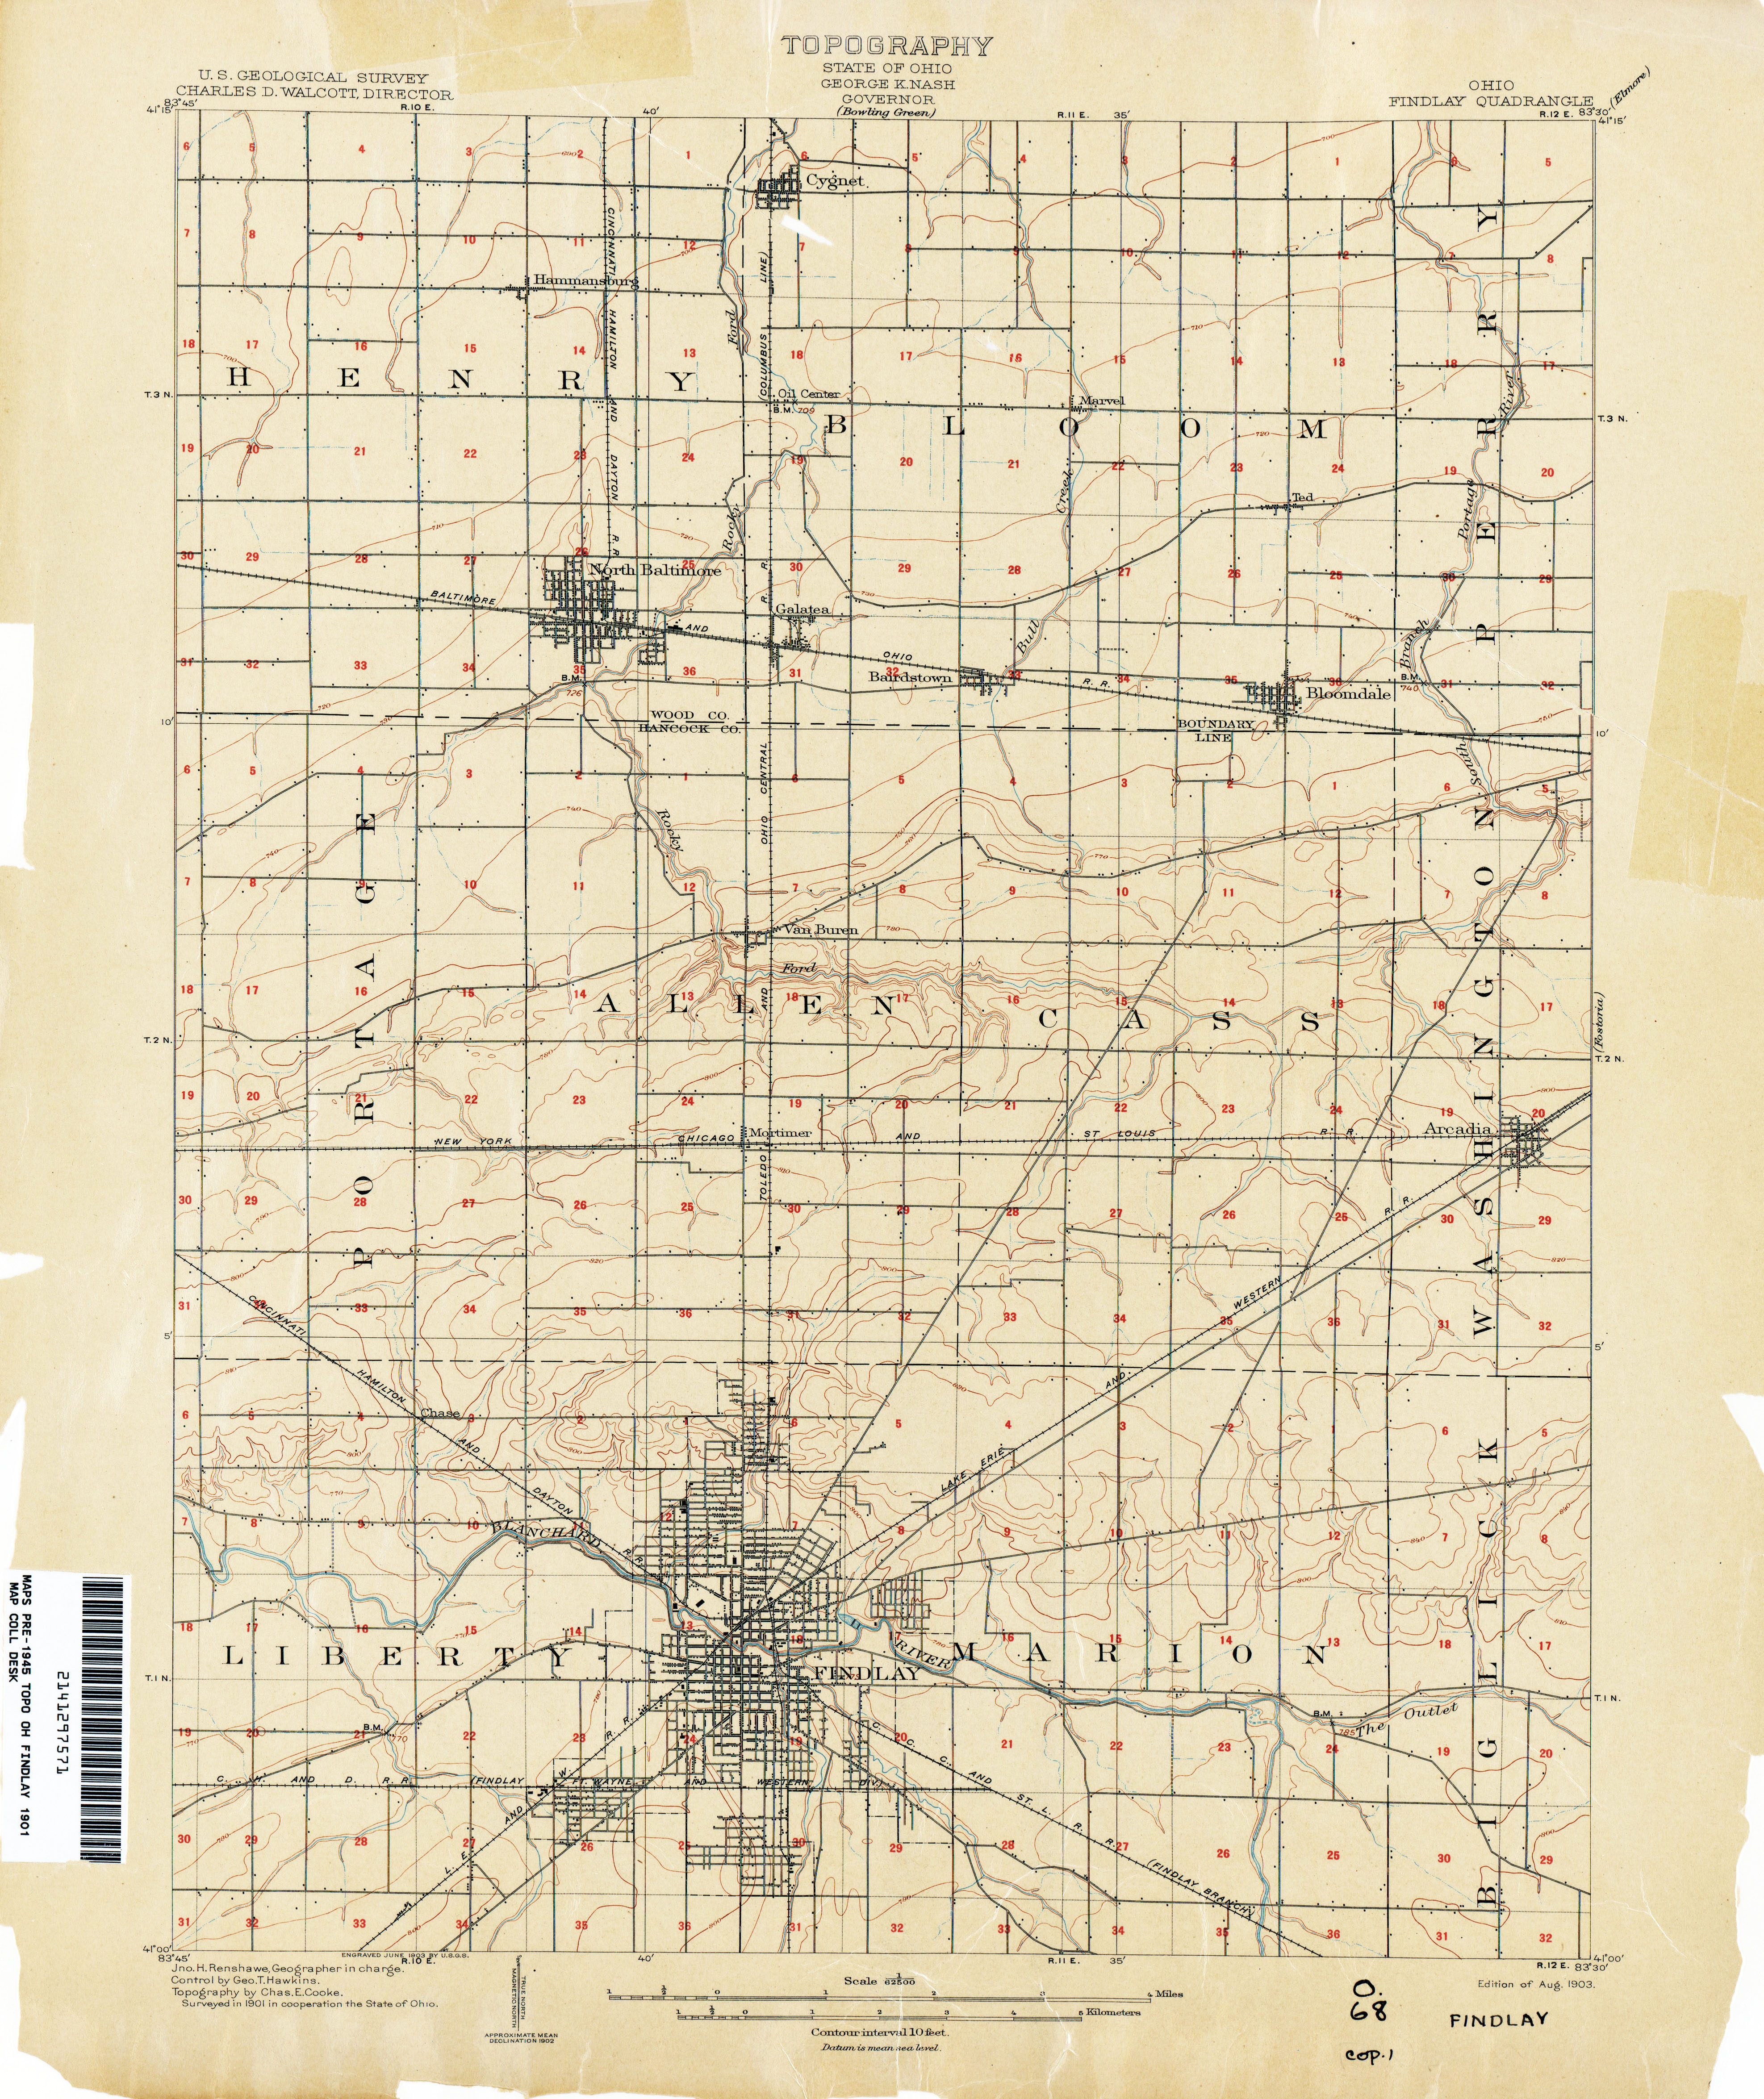 find information topographical map of findlay ohio 1901